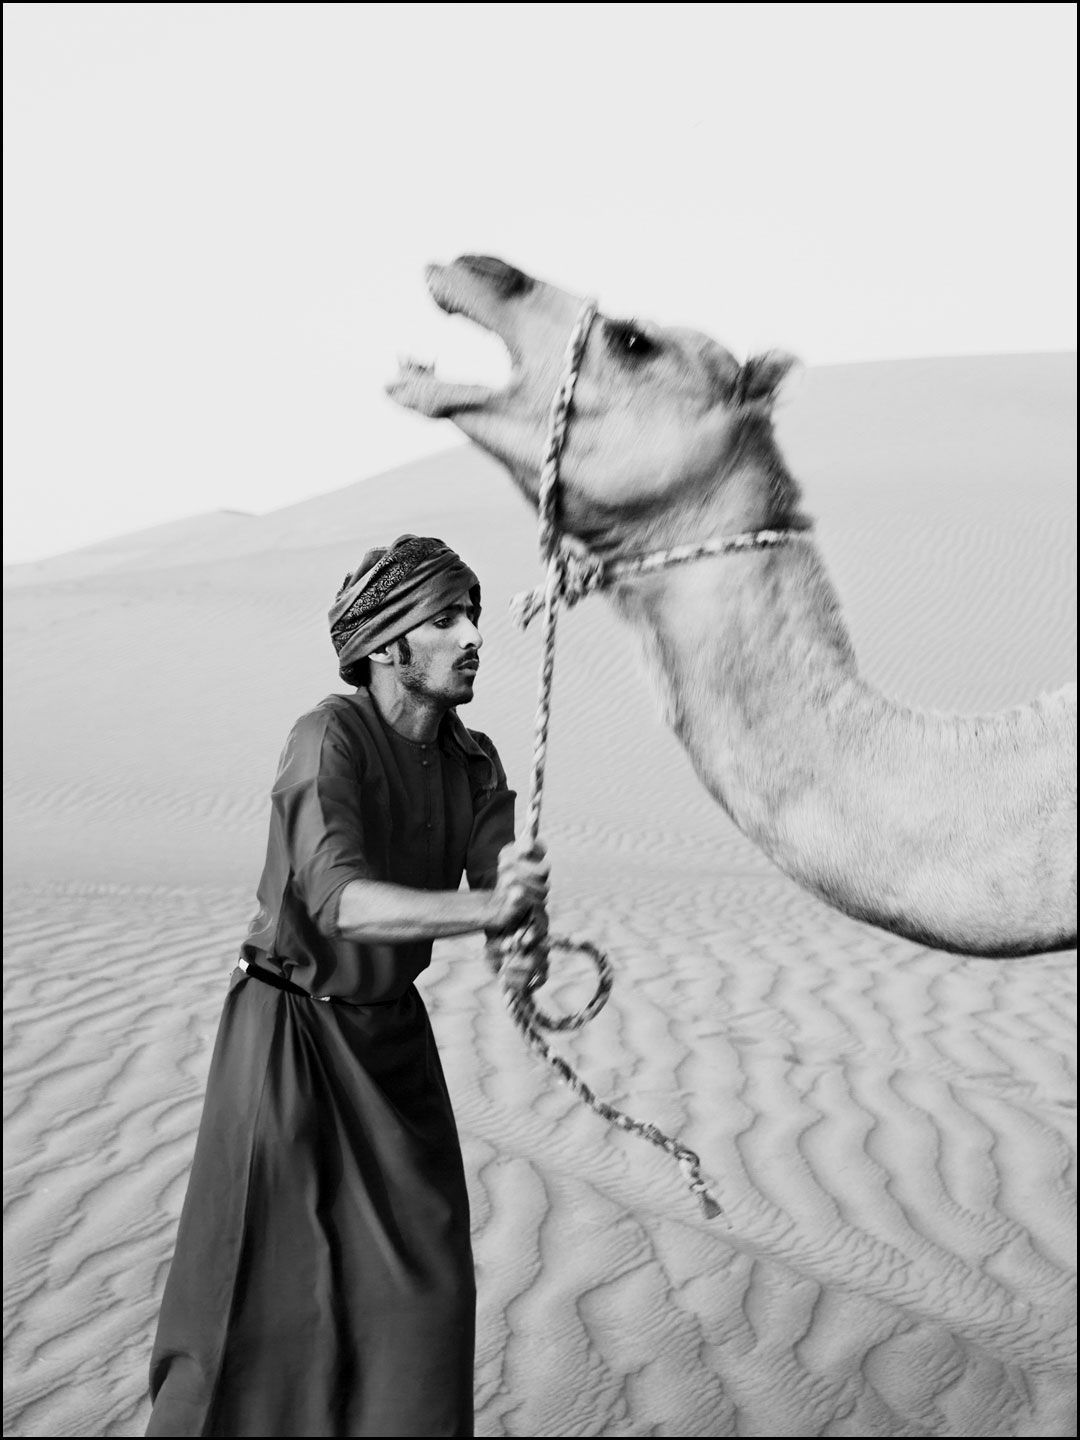 Camel leader Amir in the Wahiba Sands